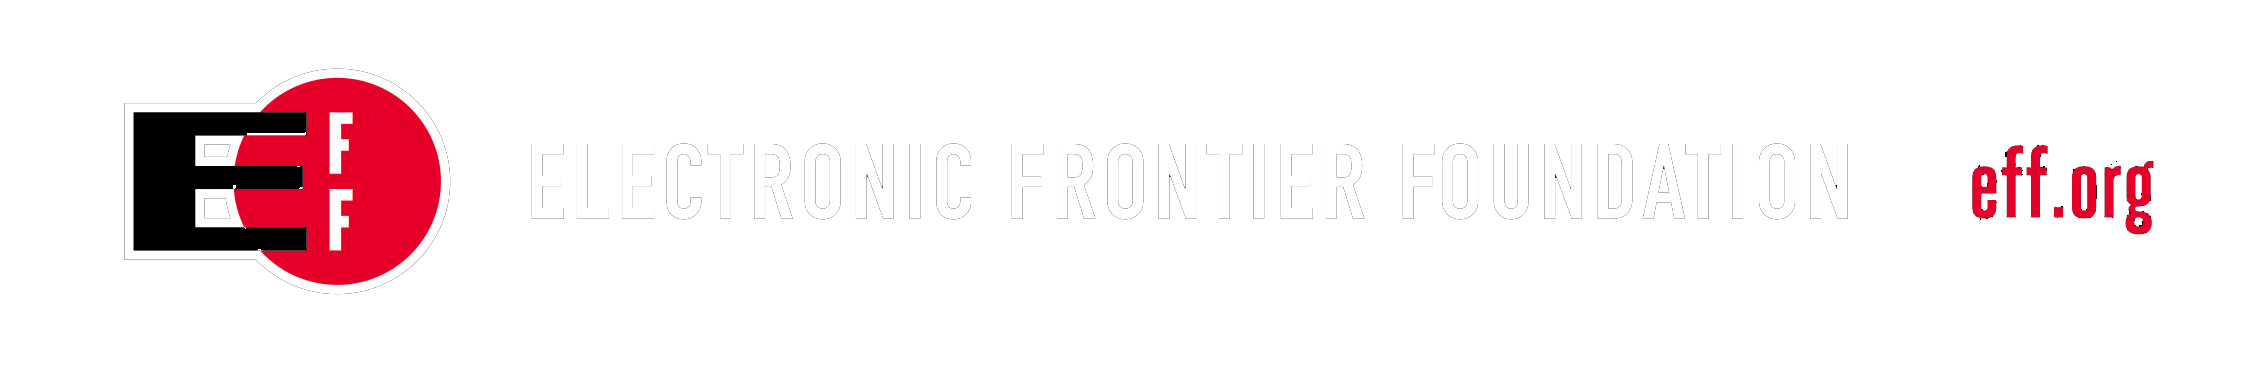 We support the Electronic Frontier Foundation!